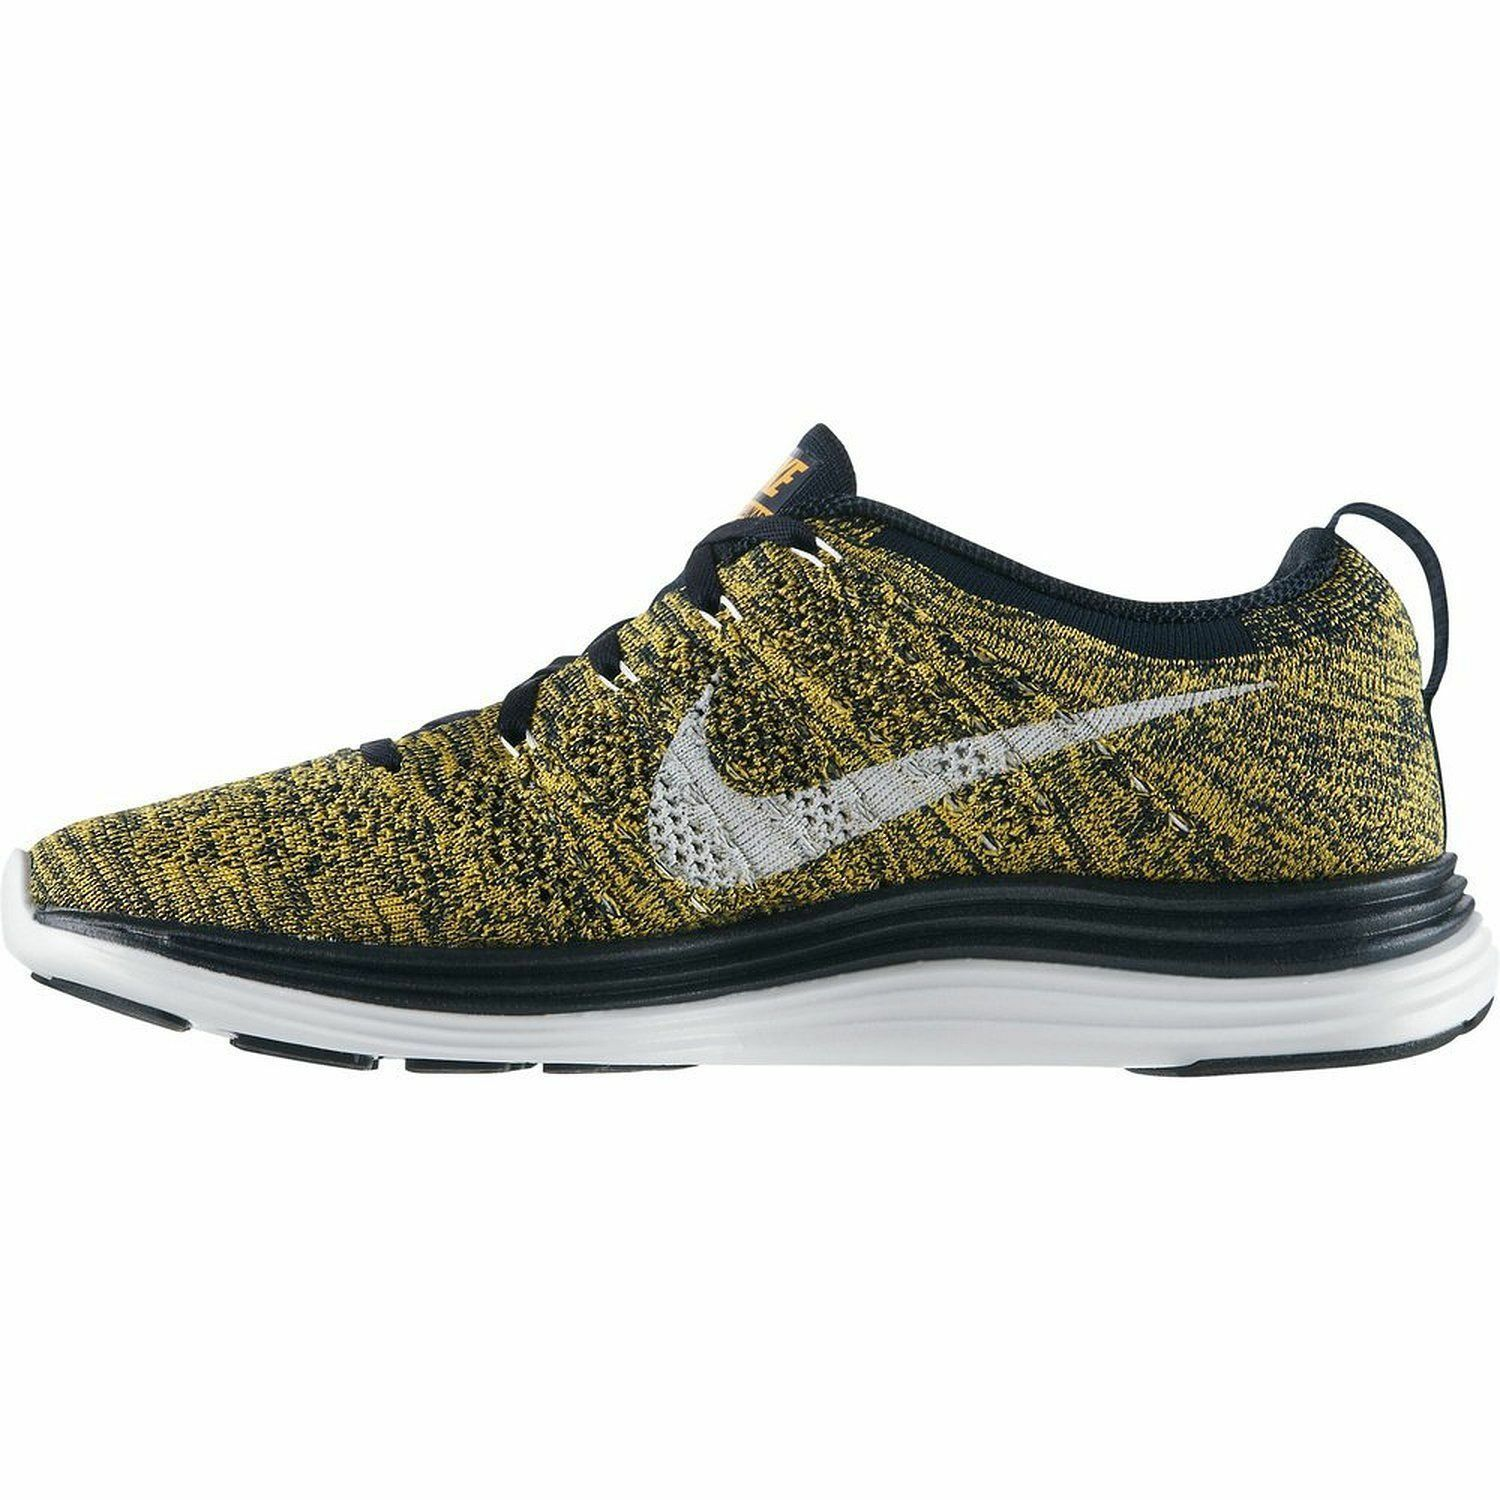 Nike Women's Flyknit Lunar1+ Running shoes - (554888)